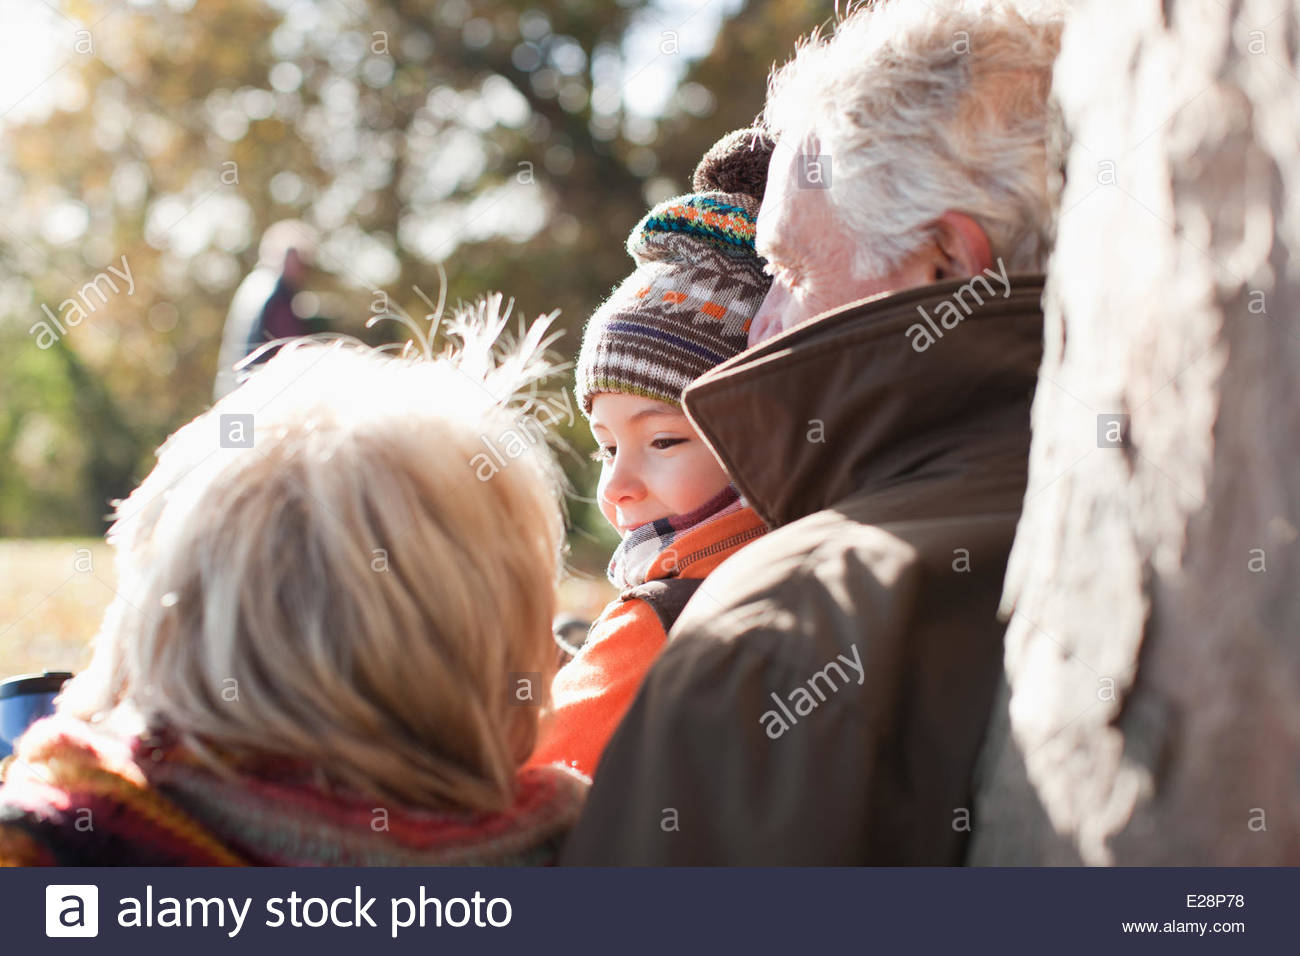 Les grands-parents leaning against tree trunk Photo Stock